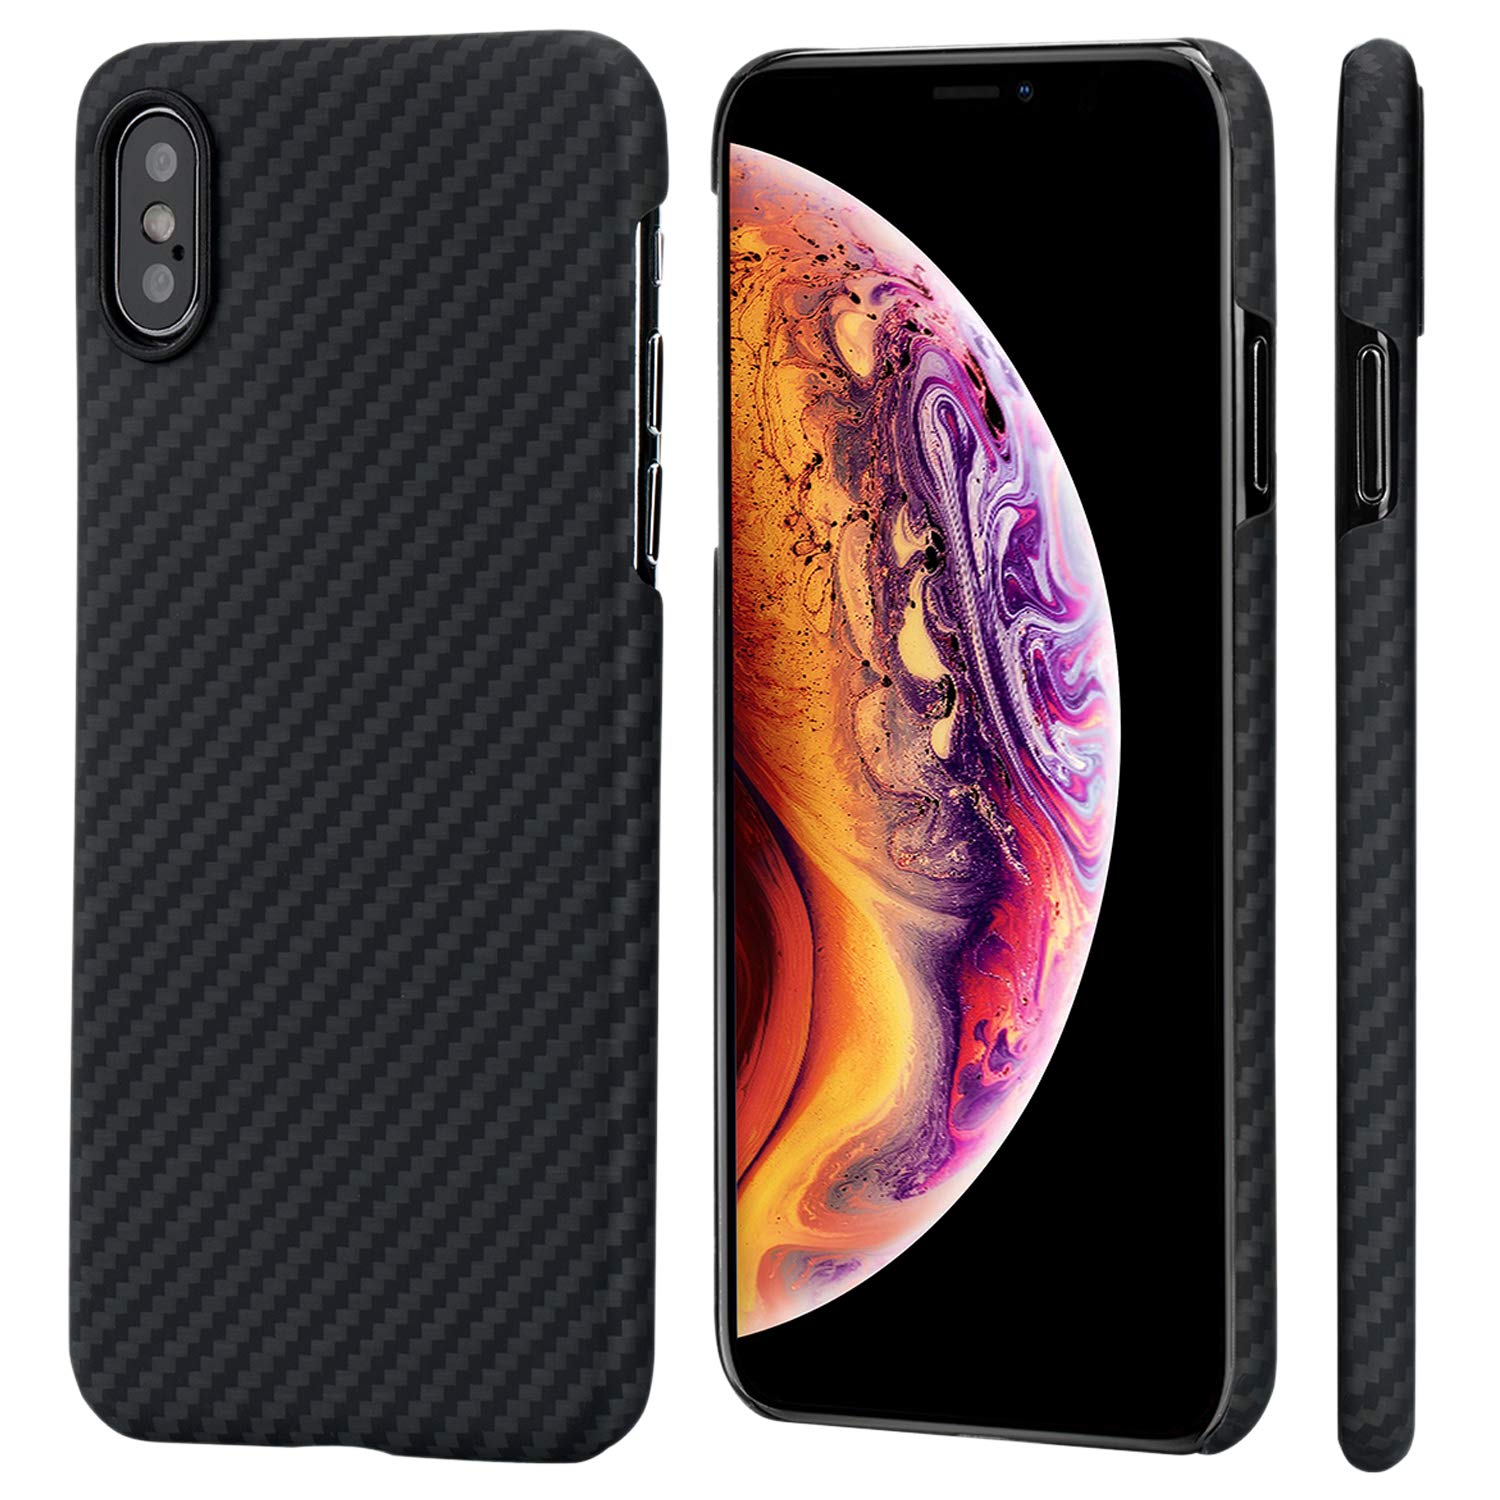 PITAKA Slim Case Compatible with iPhone Xs 5.8'', MagCase Aramid Fiber [Real Body Armor Material] Phone Case,Minimalist Strongest Durable Snugly Fit Snap-on Case - Black/Grey(Twill) by PITAKA